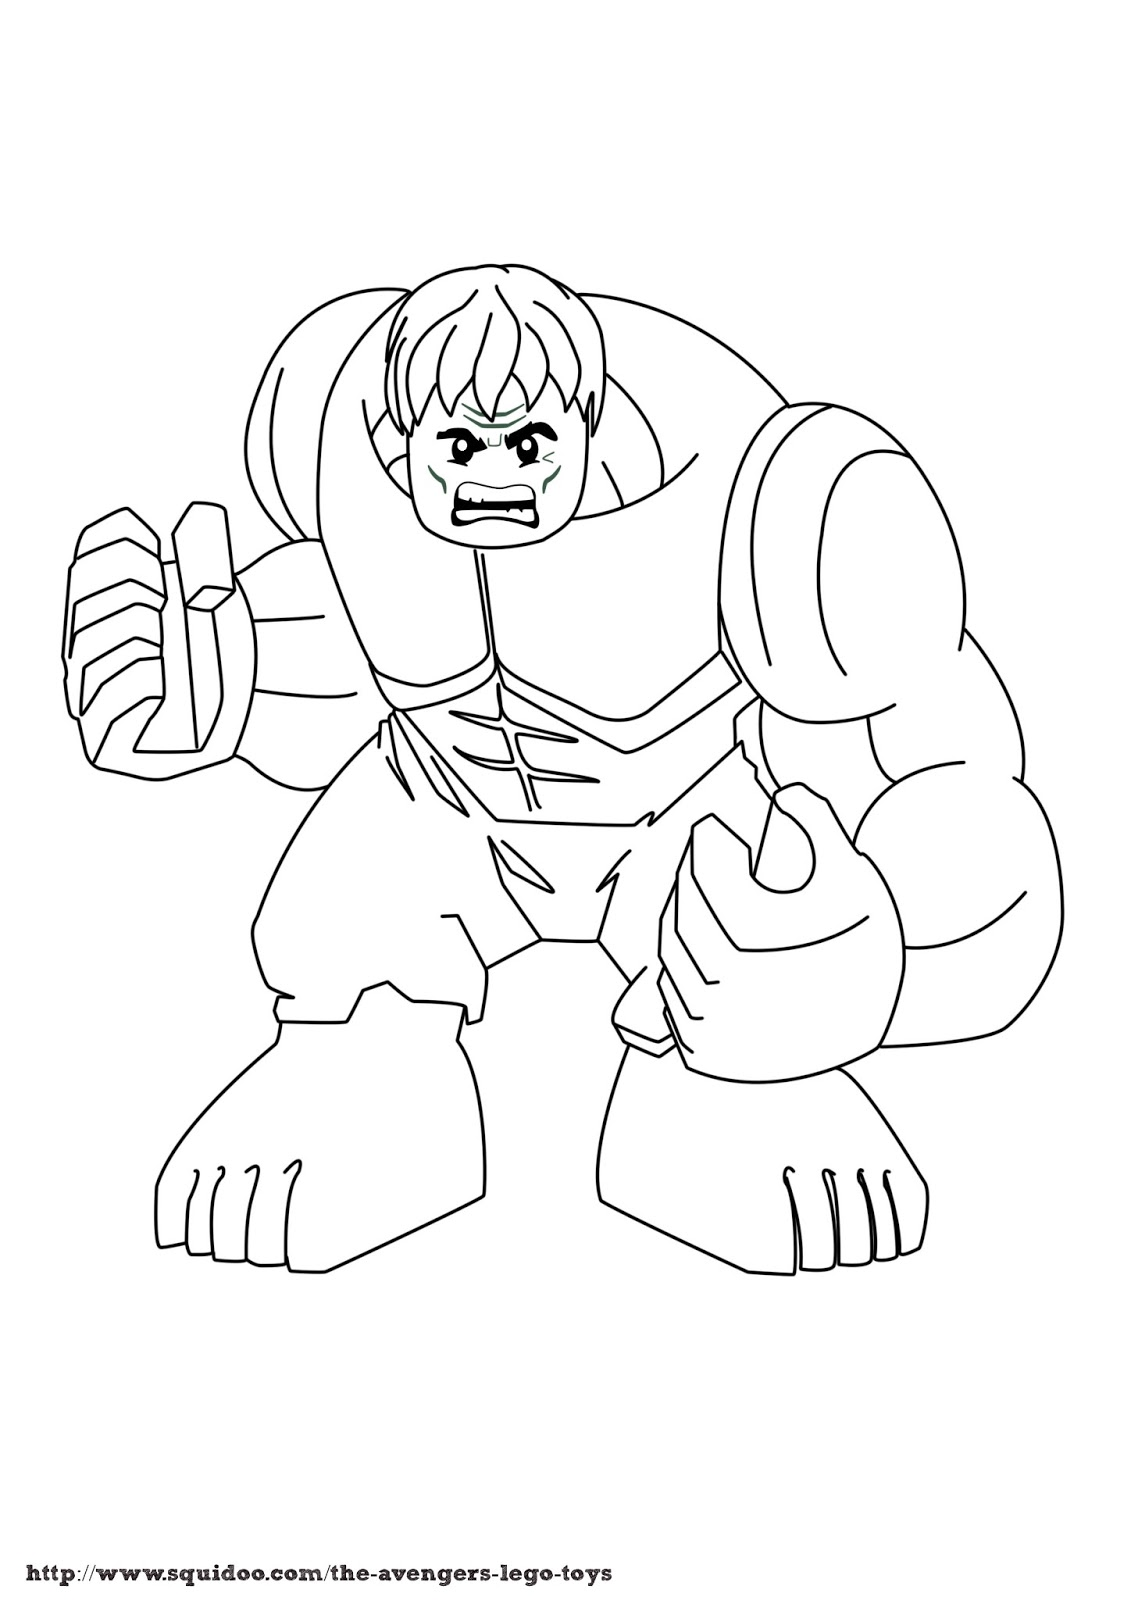 1131x1600 Lego Avengers Coloring Pages